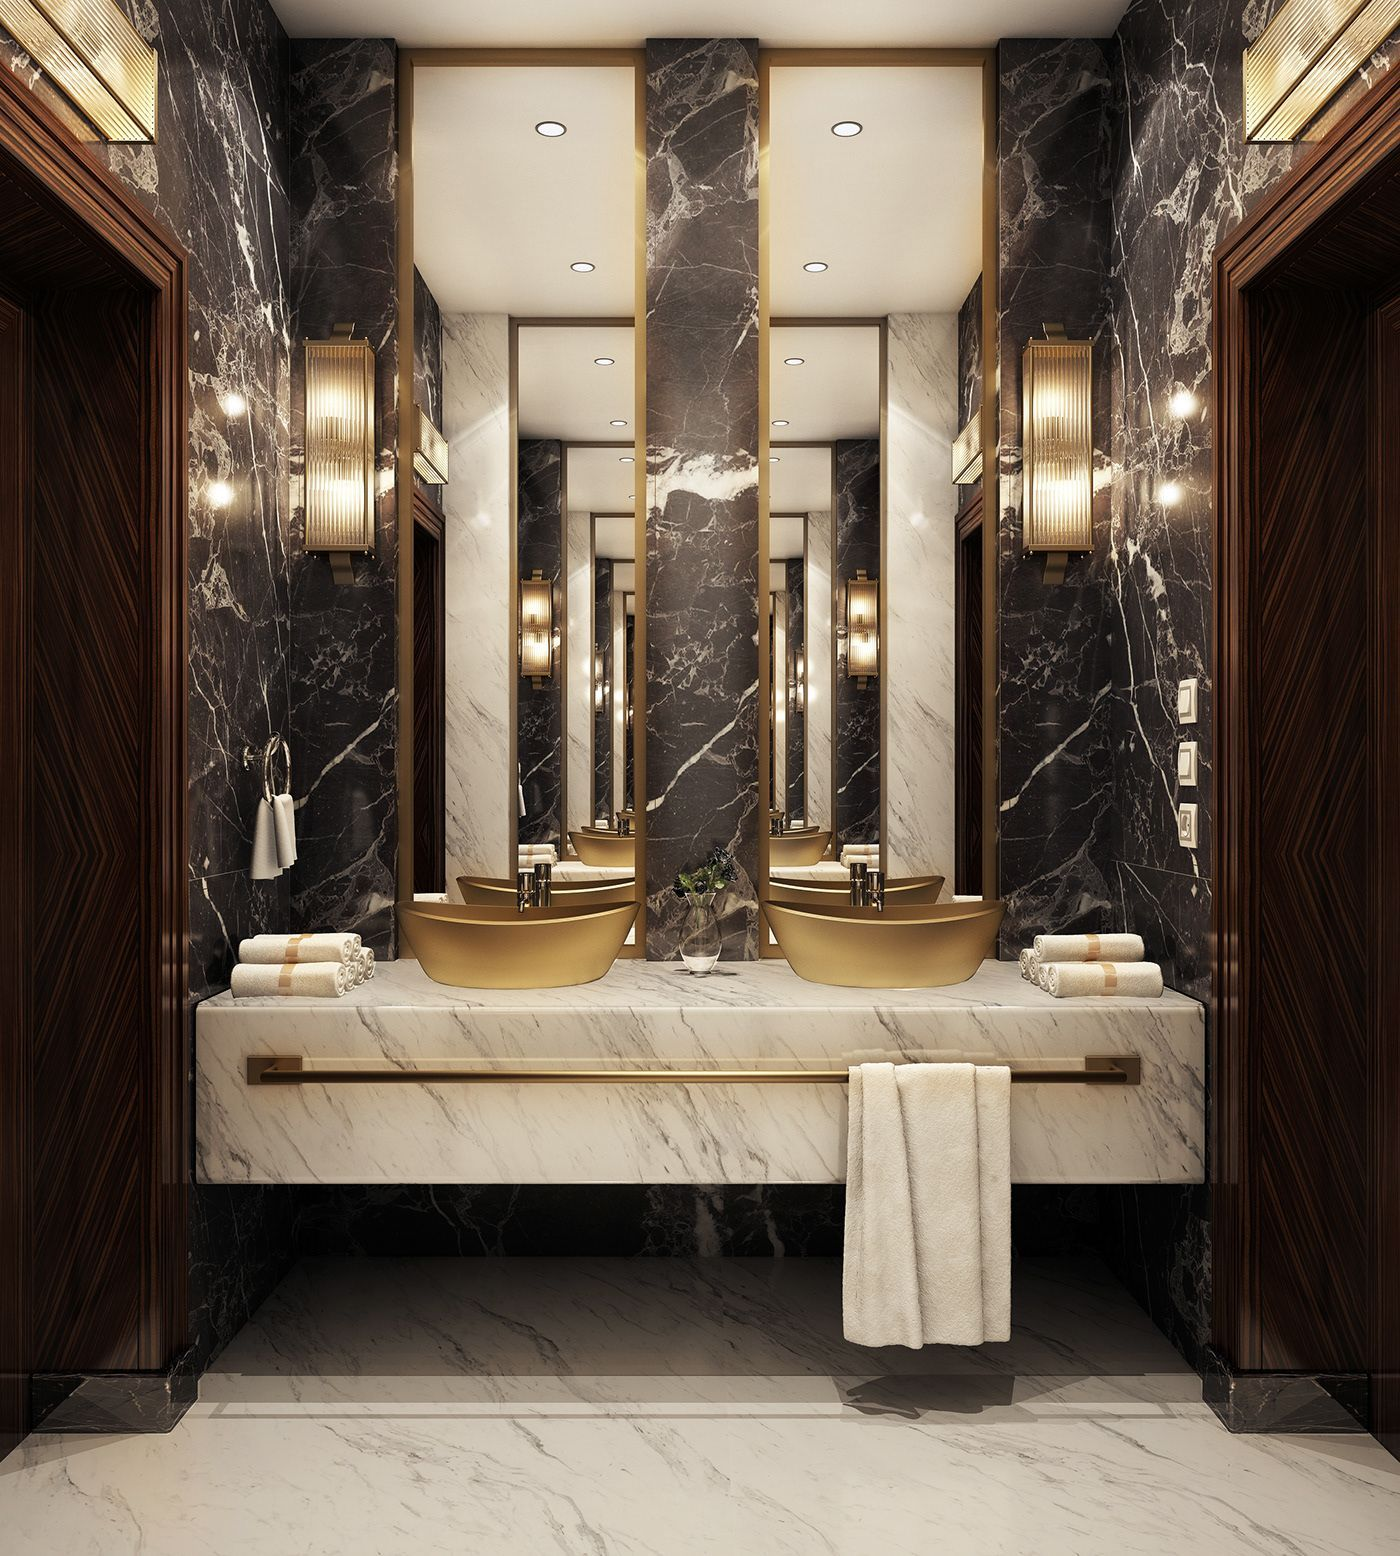 Fresh contemporary and luxury bathroom design ideas for your home